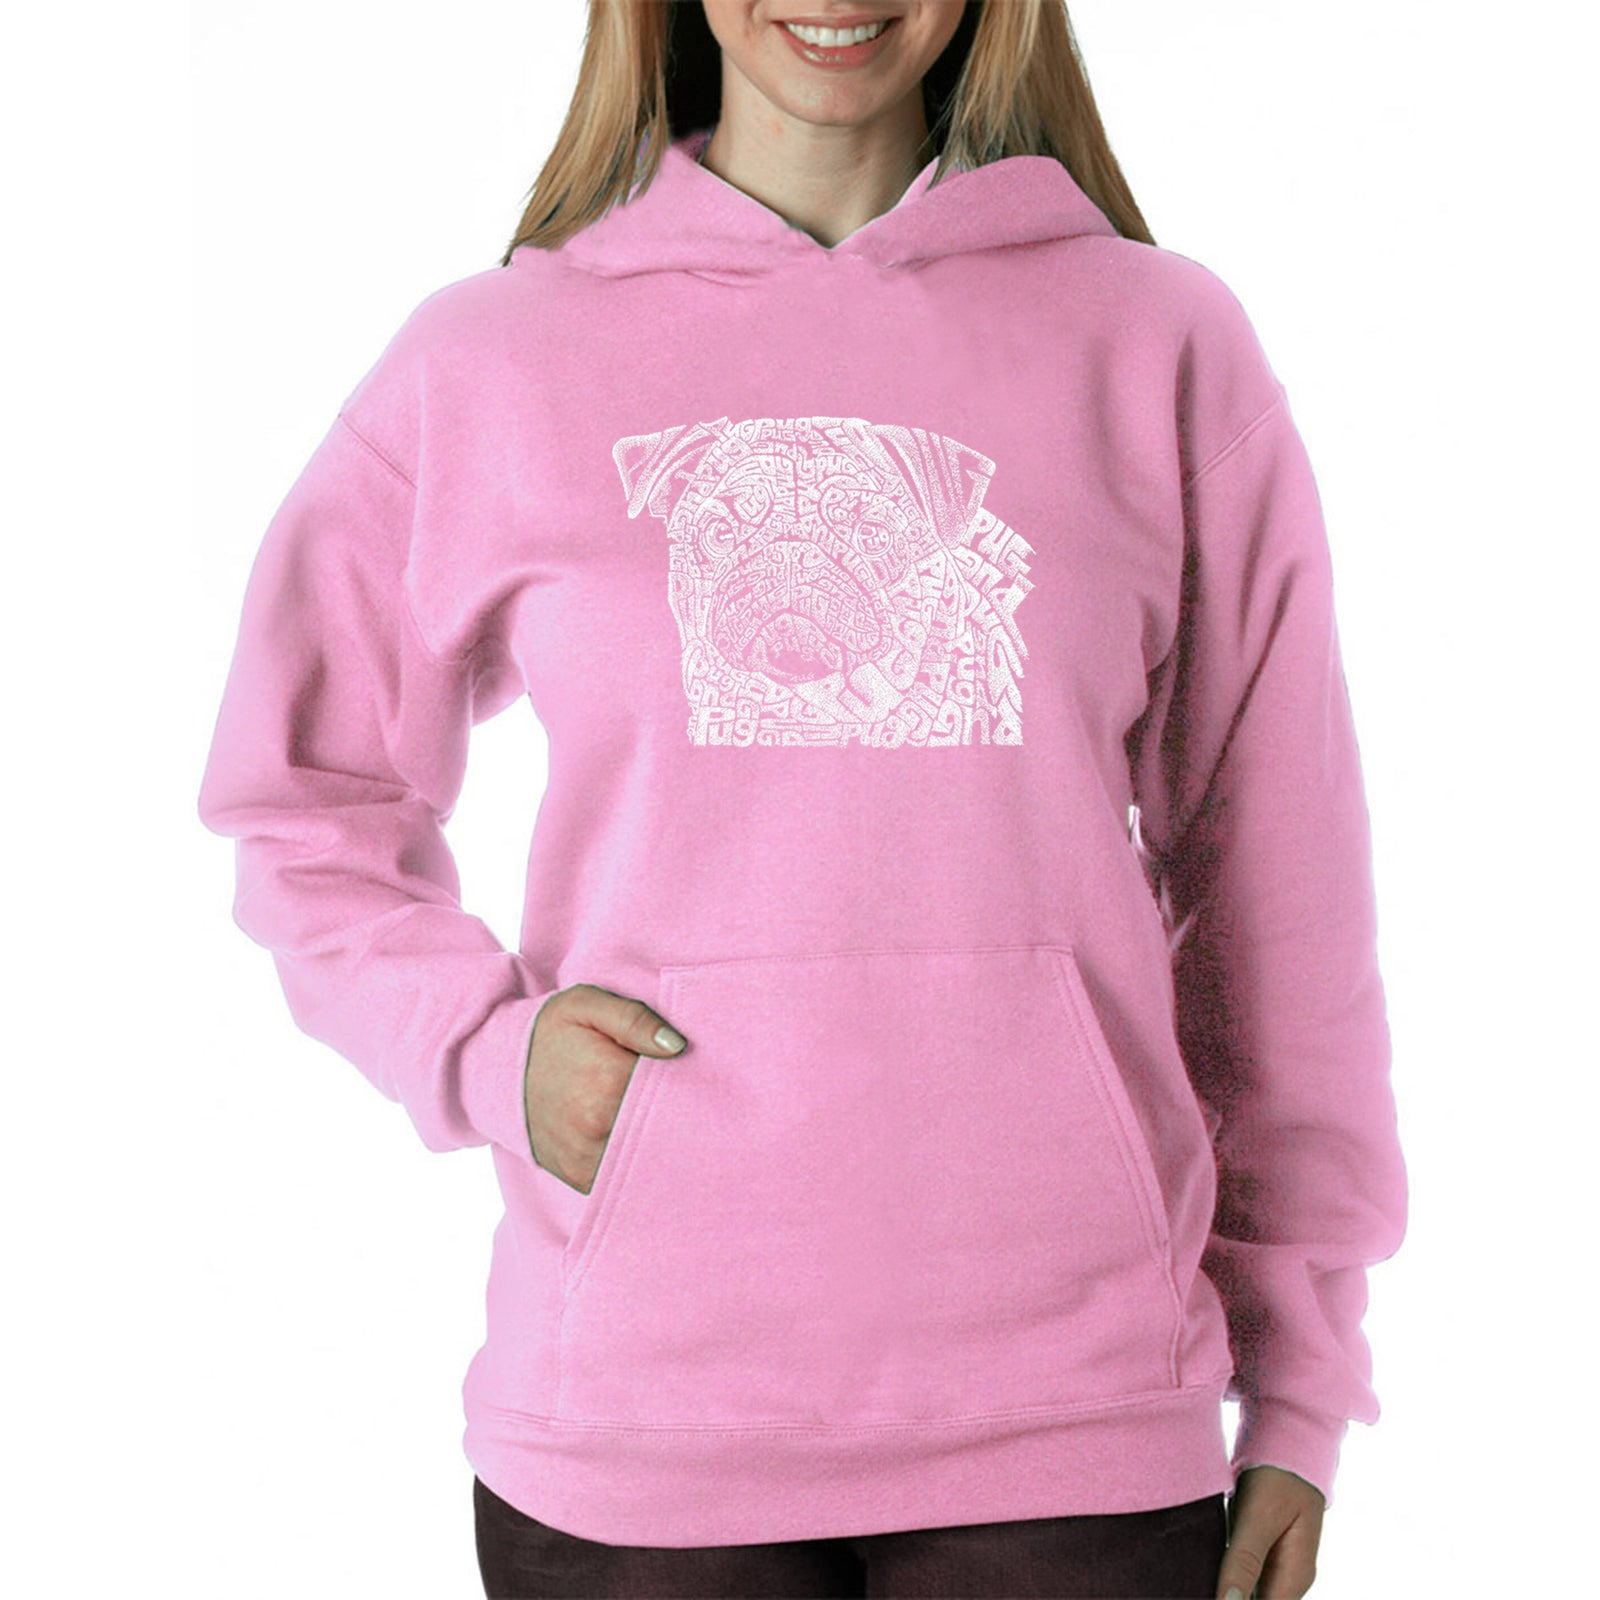 Women's Hooded Sweatshirt - Pug Face